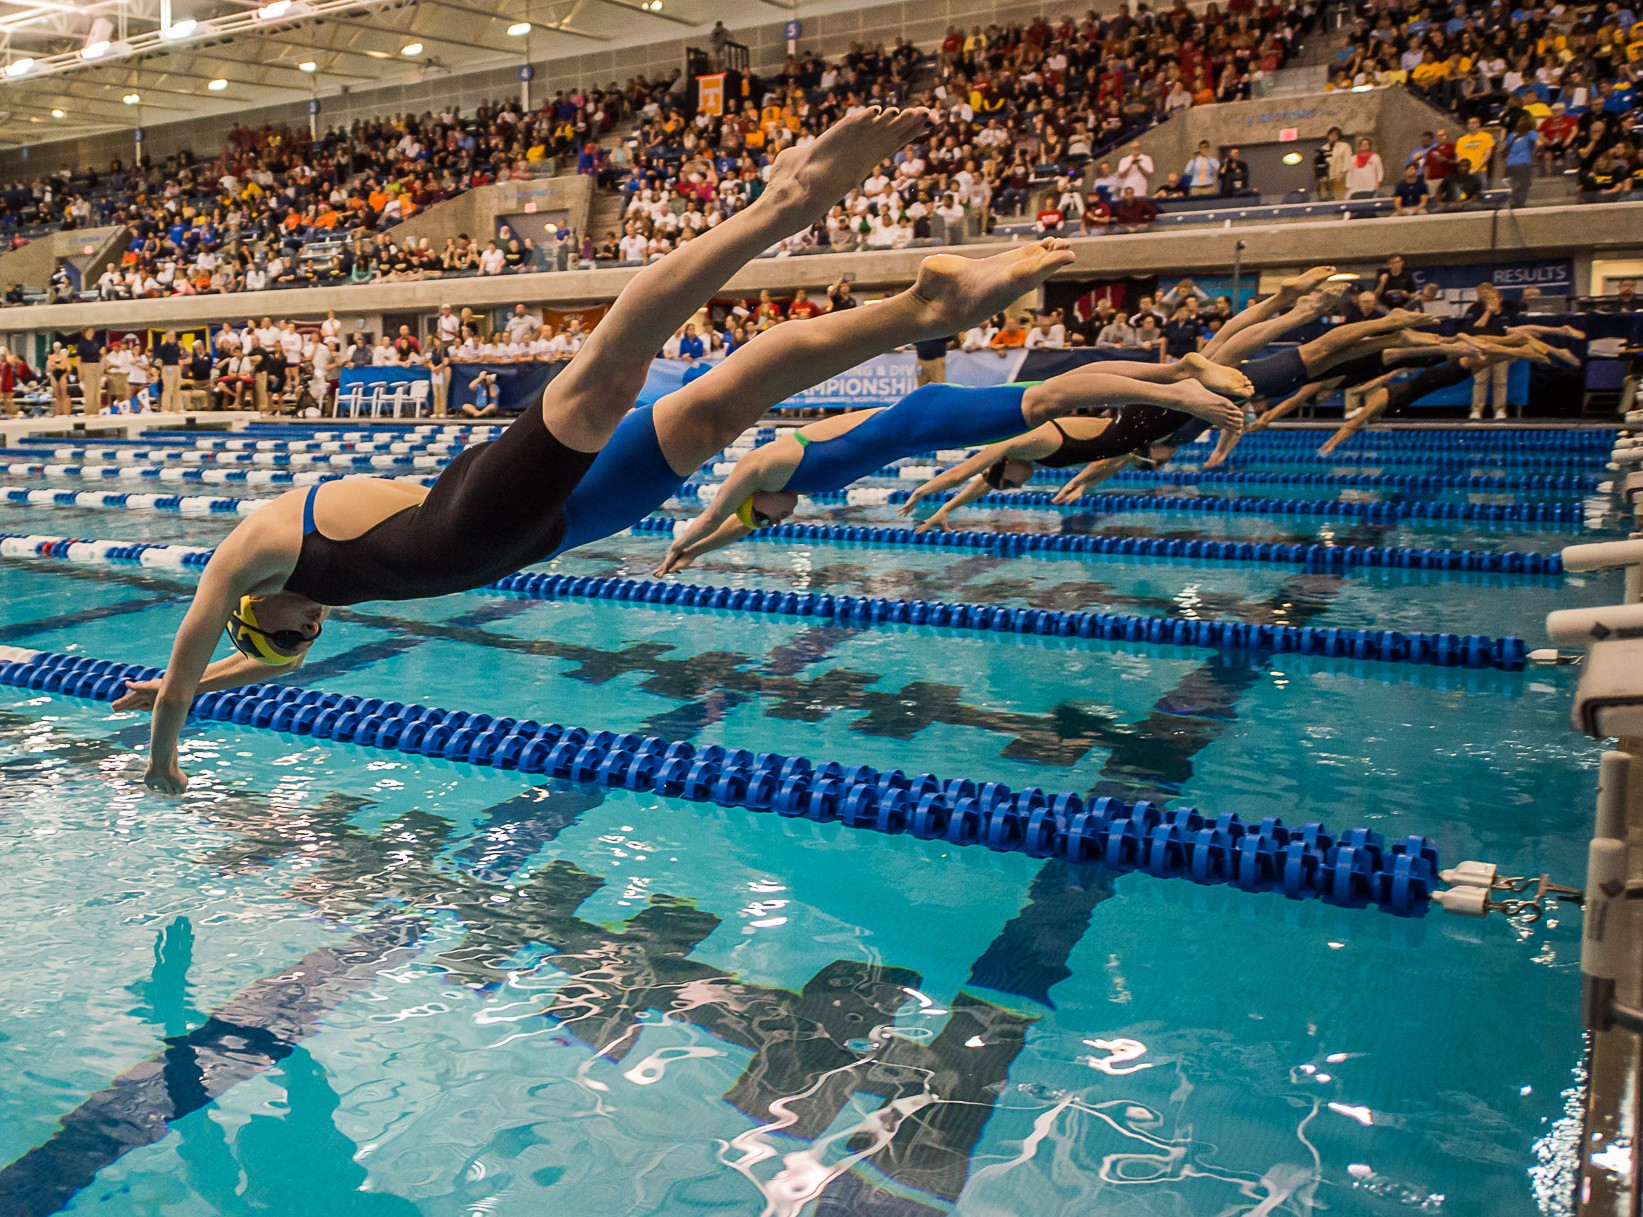 Greensboro Aquatic Center: More Than Just A Pool